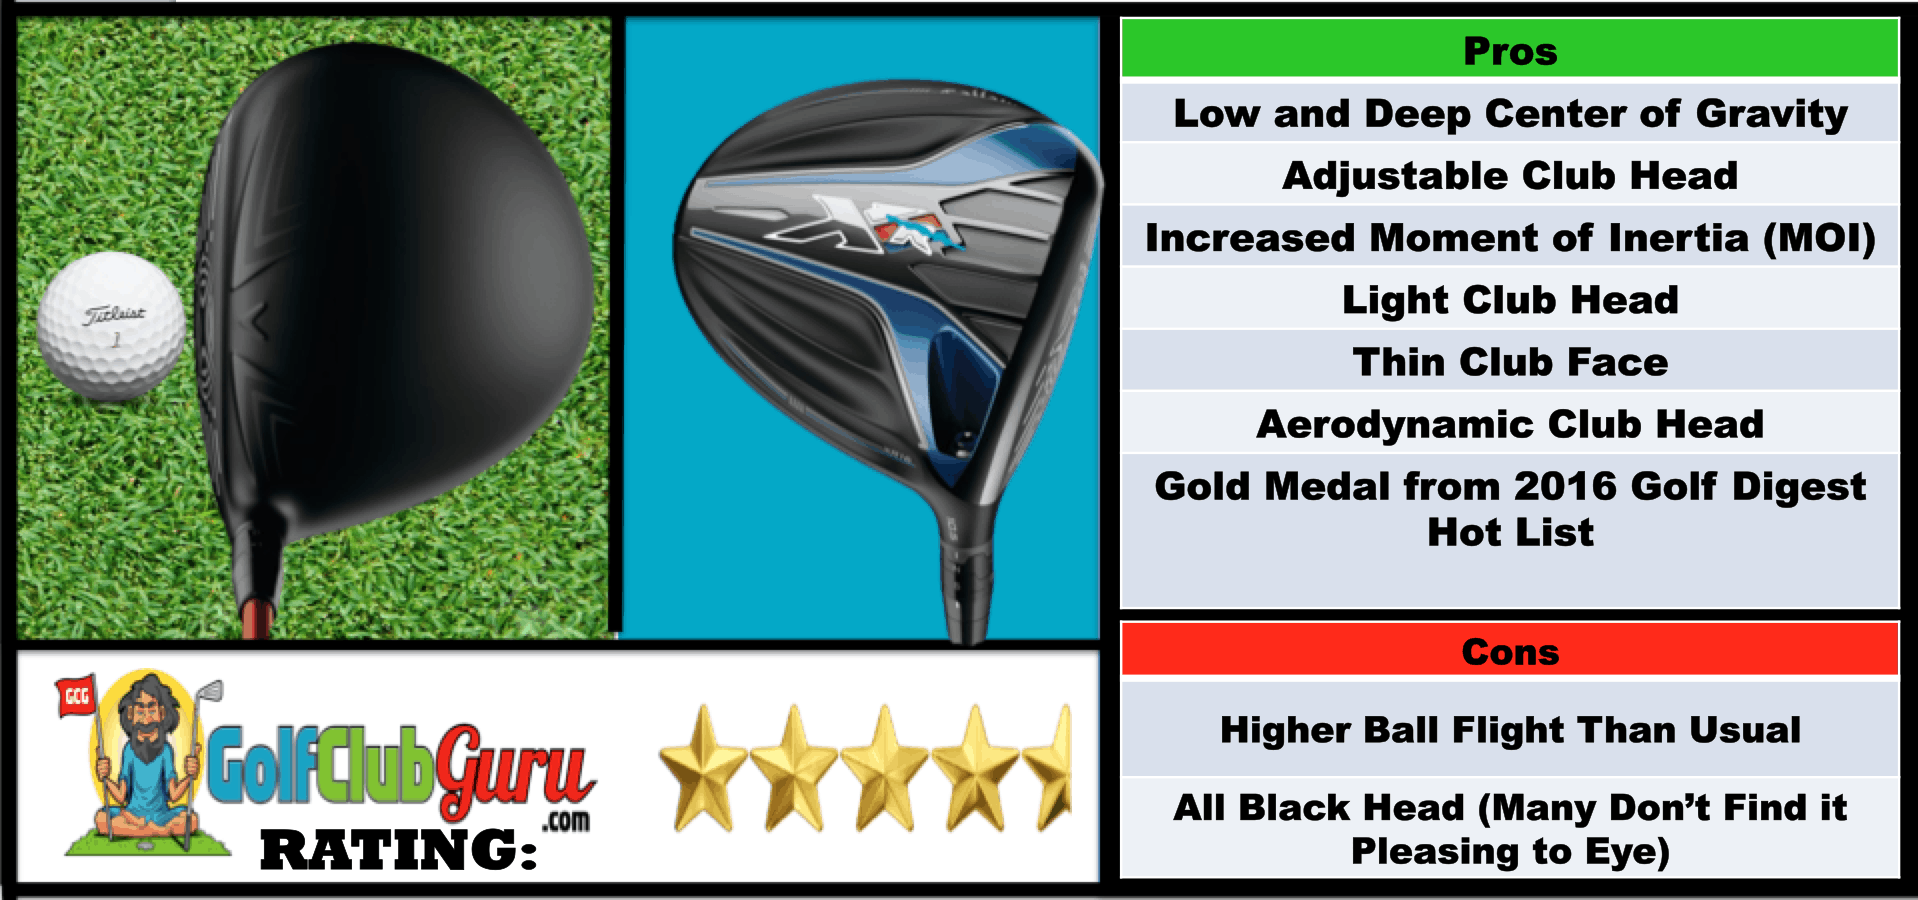 Photos, Review, Ranking, Pros, and Cons of Callaway XR 16 Driver